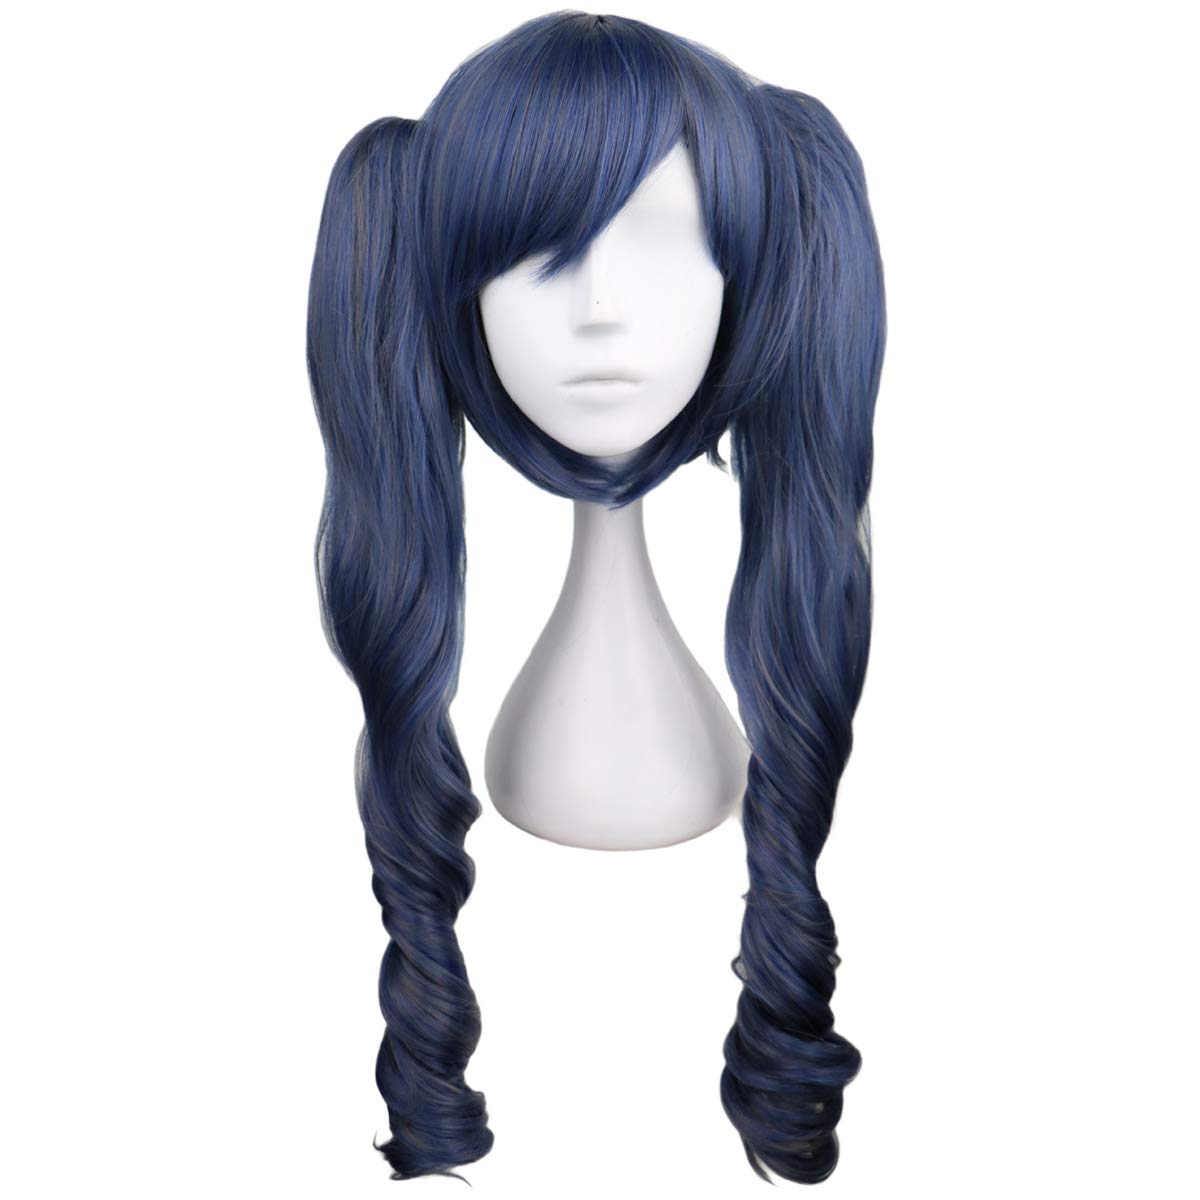 EZ2WORLD Blue Mixed Gray Curly Anime 2 Ranking TOP4 Manufacturer direct delivery Wig Cosplay Ponytail with